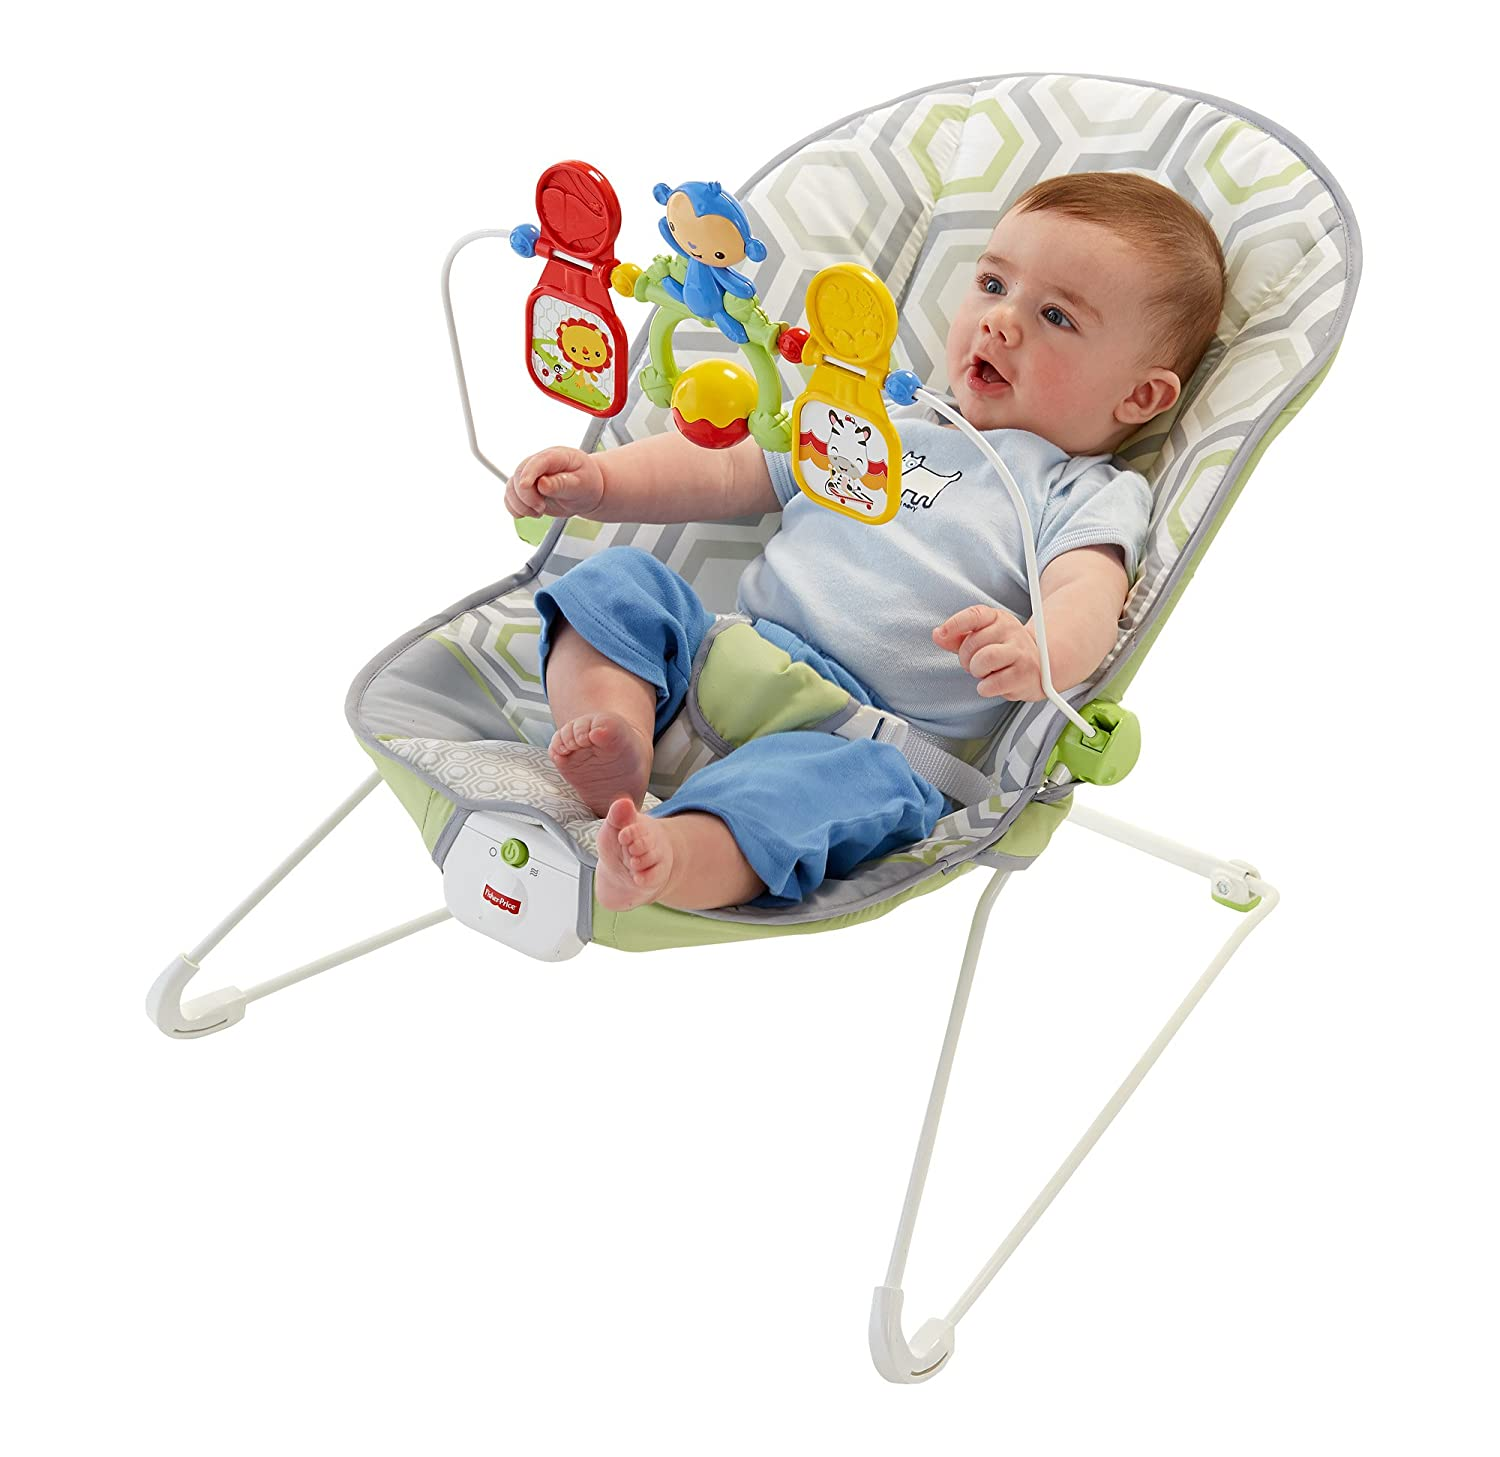 Amazoncom BouncersSwings JumpersBouncers Baby Products